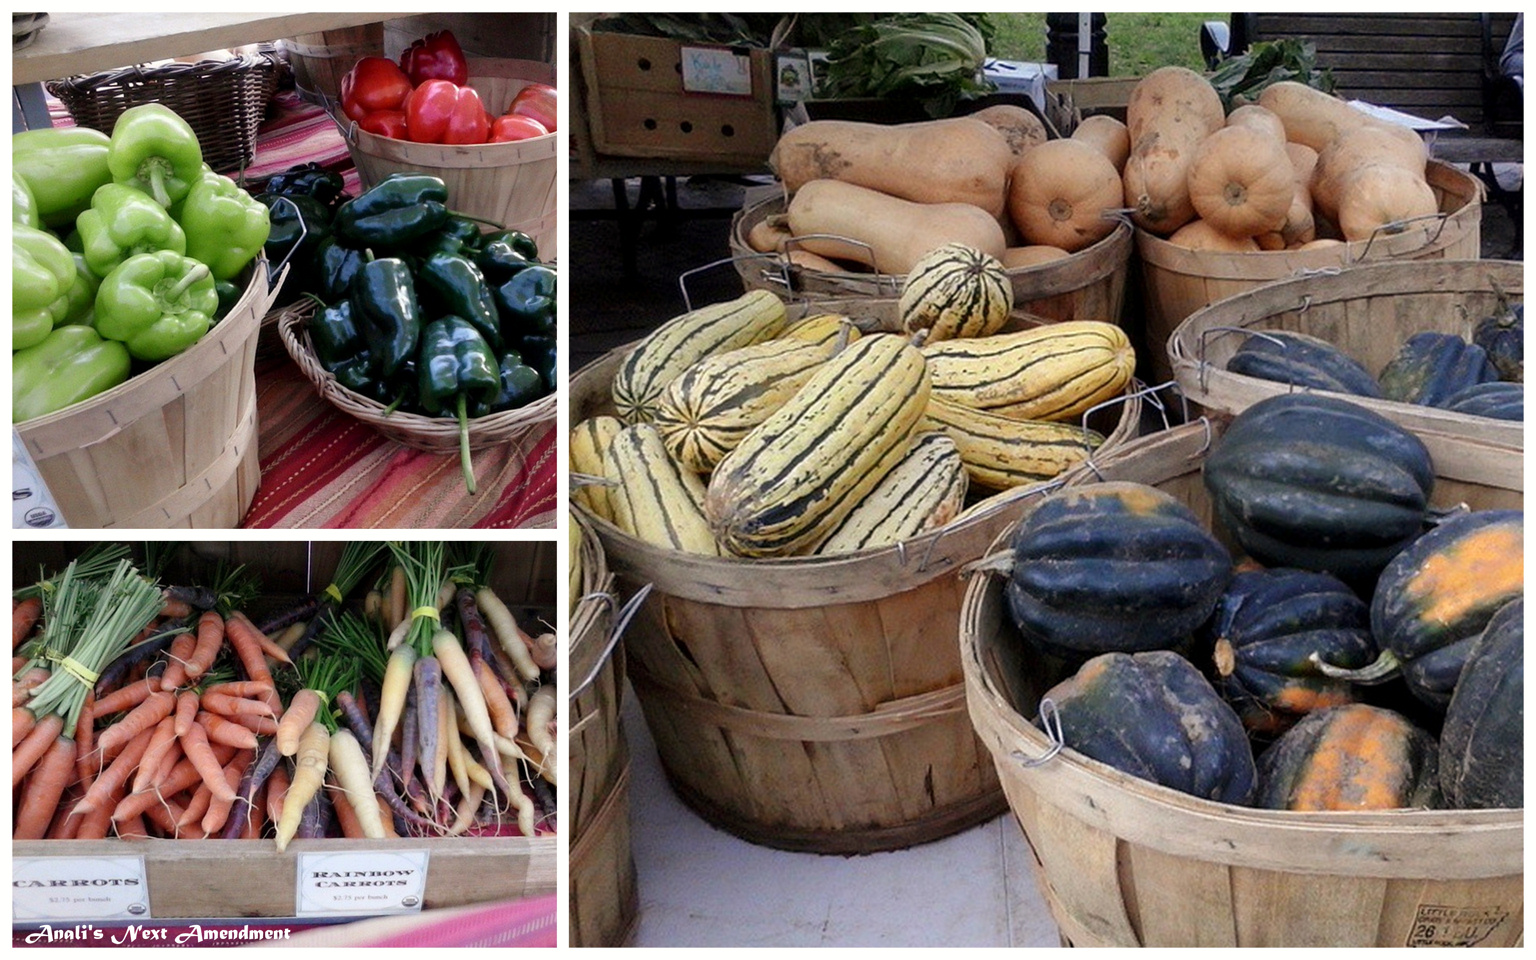 Copley Square Farmers market squash carrots peppers